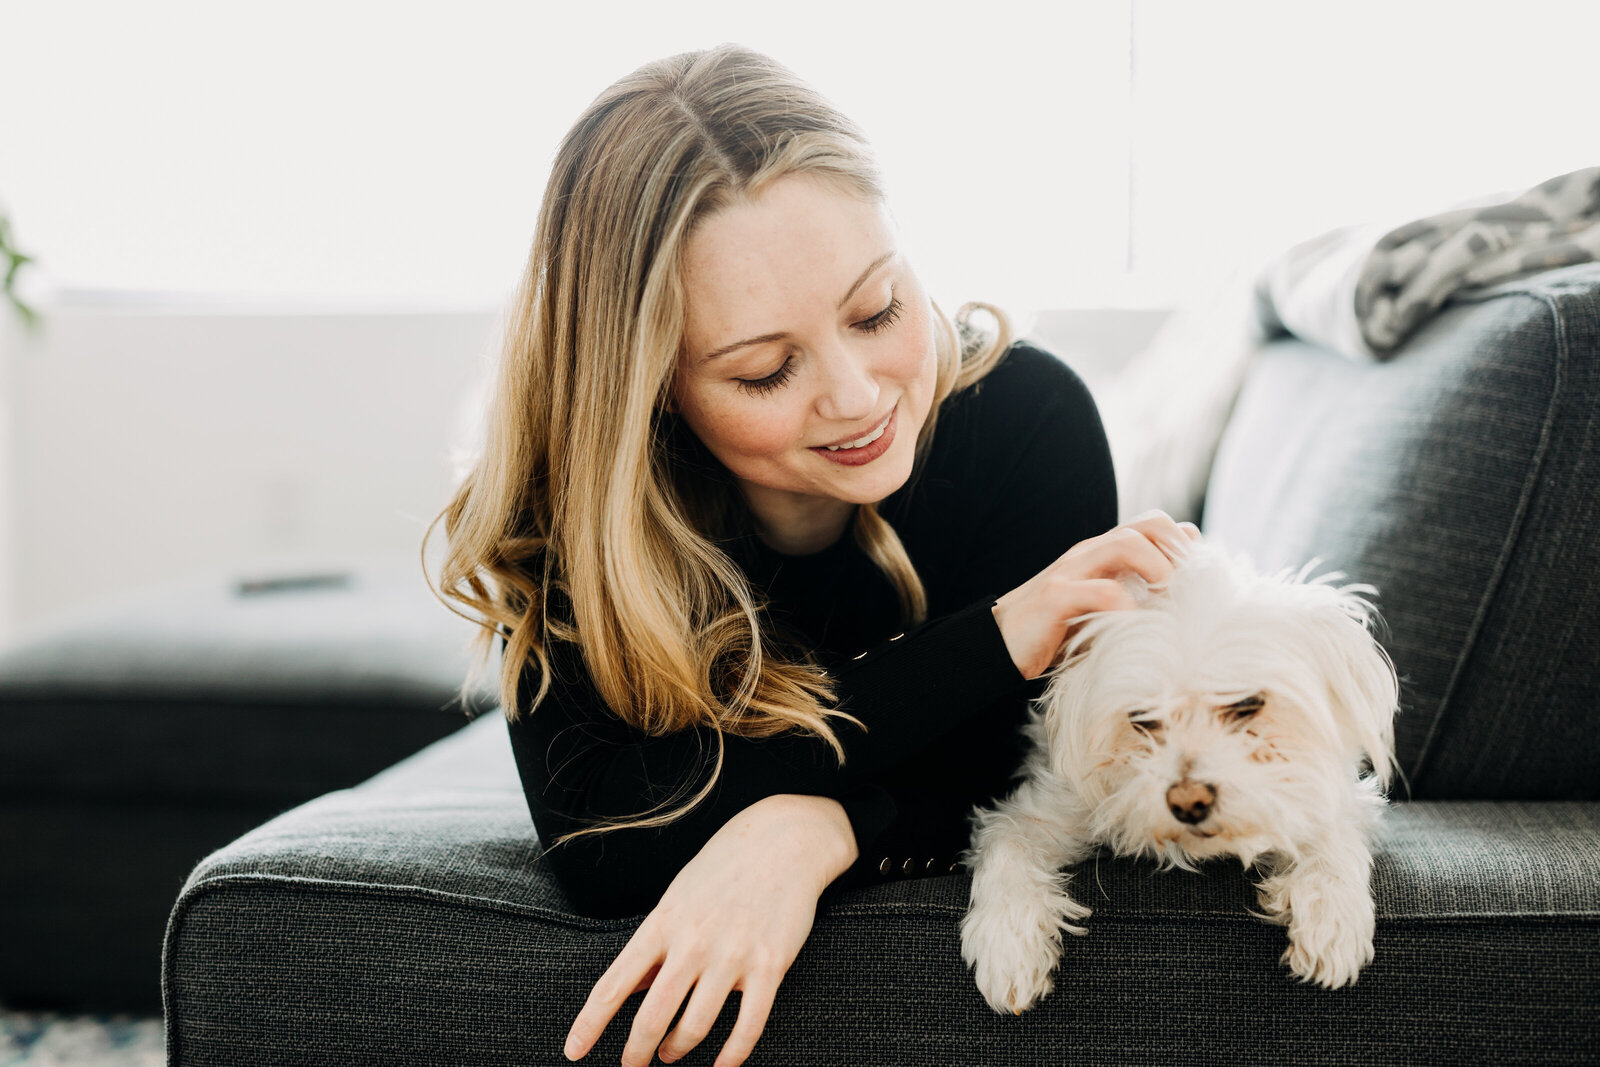 woman with white dog on couch